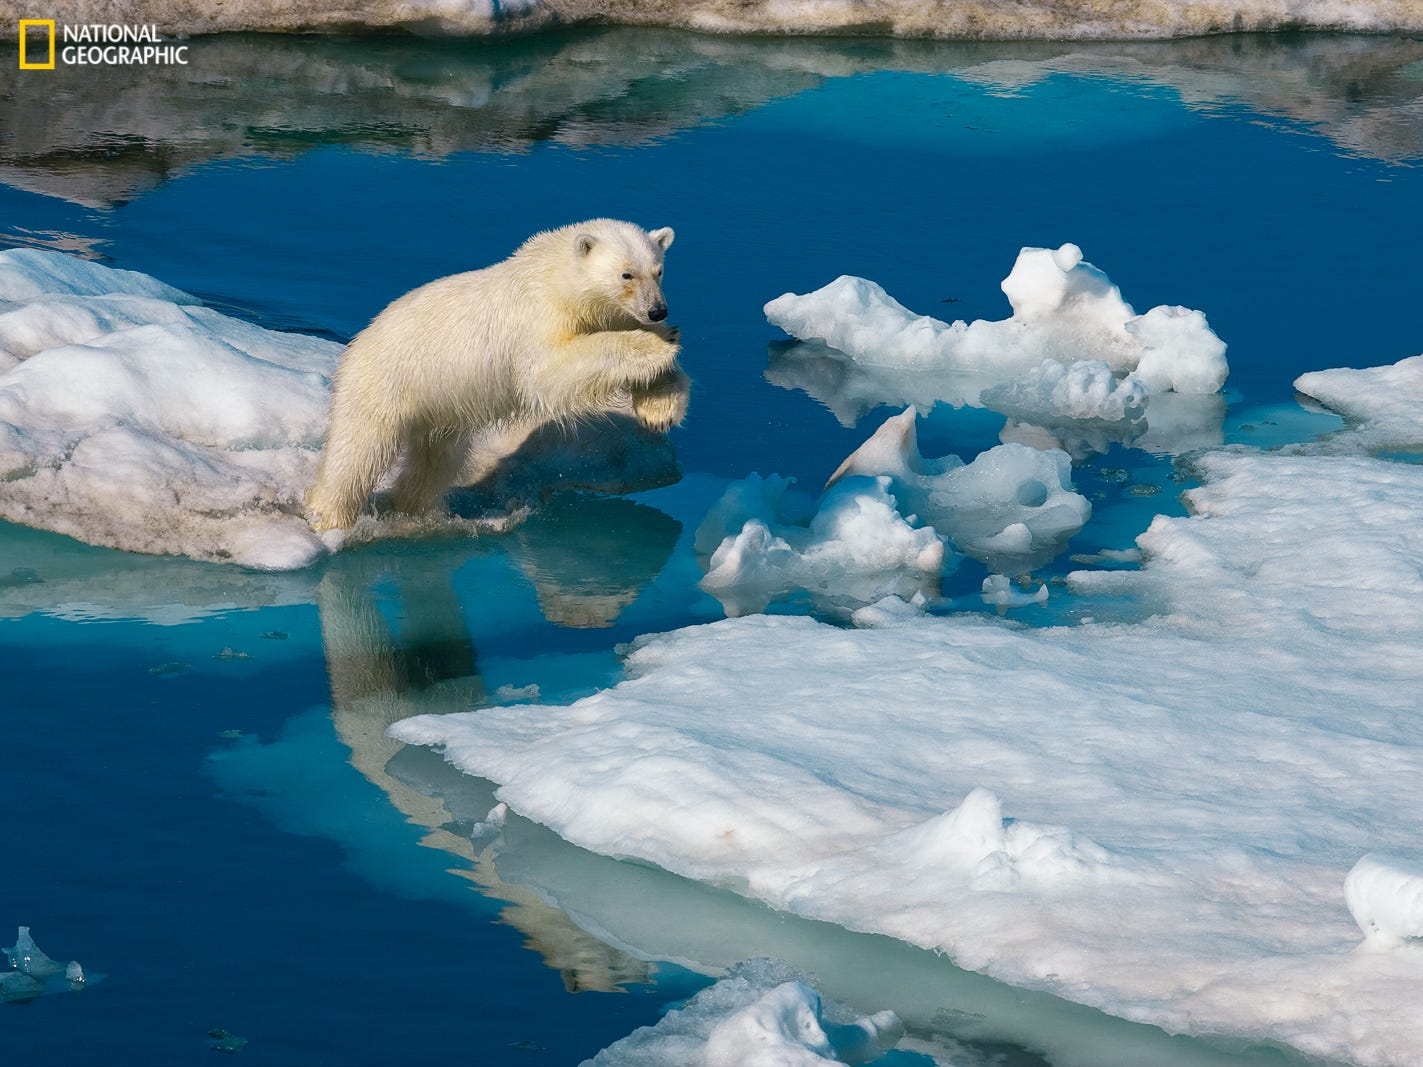 A young male polar bear leaping onto drifting pack ice. The exhibition is organized and traveled by the National Geographic Society